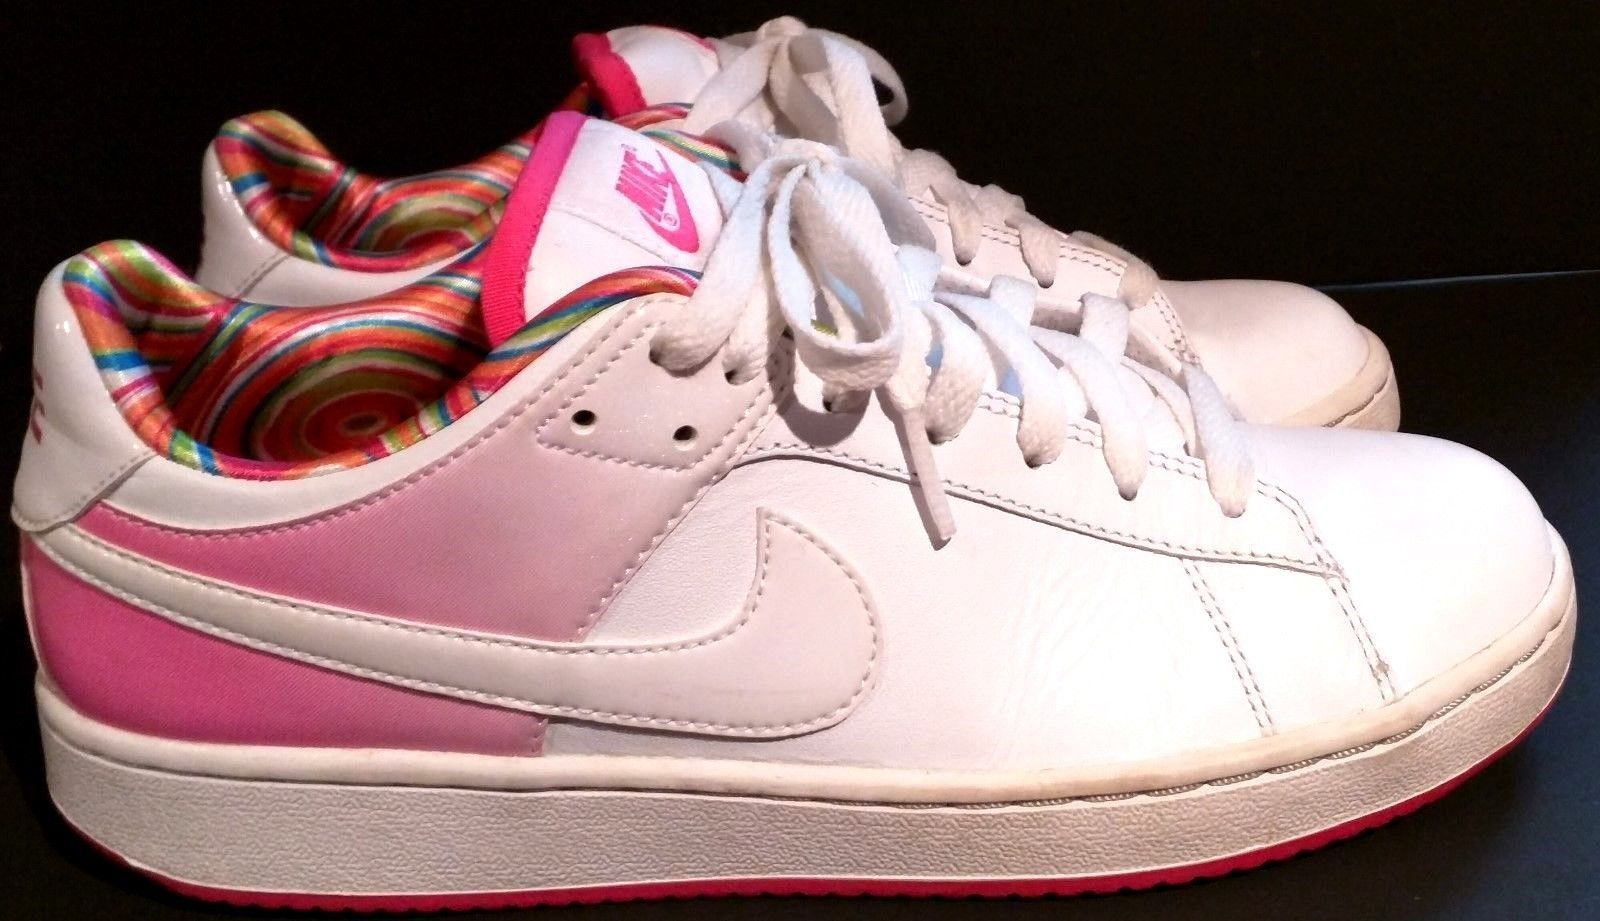 free shipping 00f93 e41ef 57. 57. Previous. NIKE SANTA CRUISE 318872 White, Hot Pink Athletic Tennis  Shoes - Womens Size  8